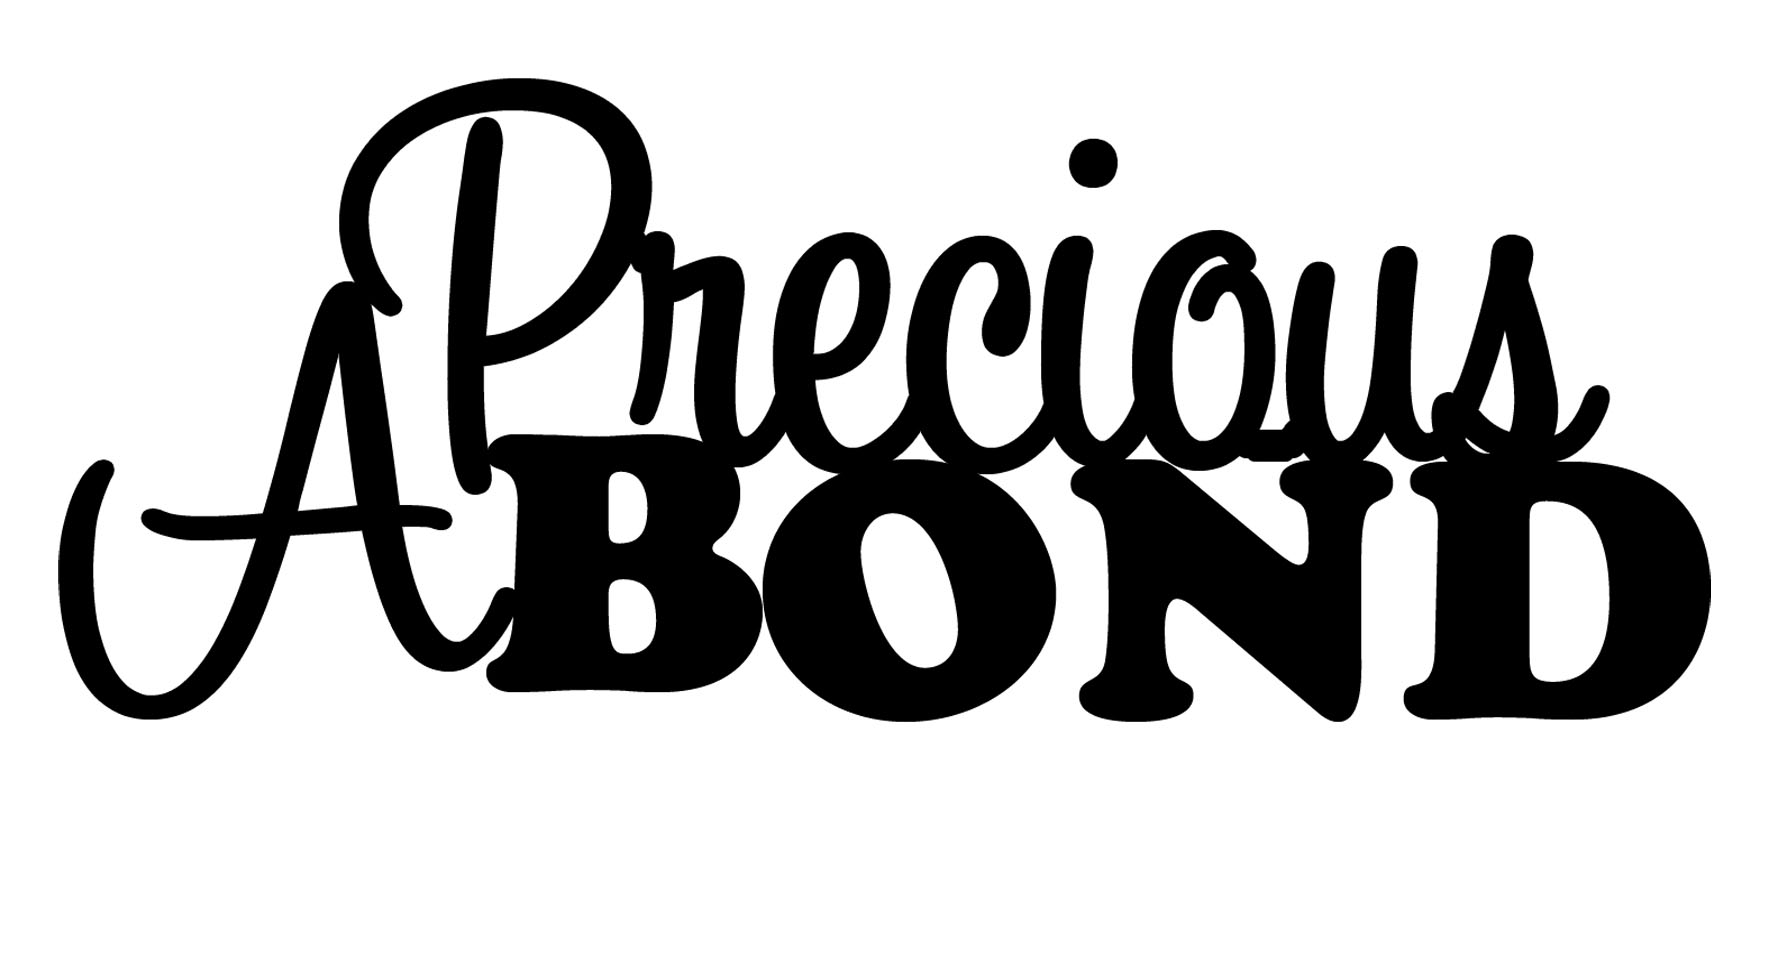 A Precious bond 120 x 50 mm min buy 3